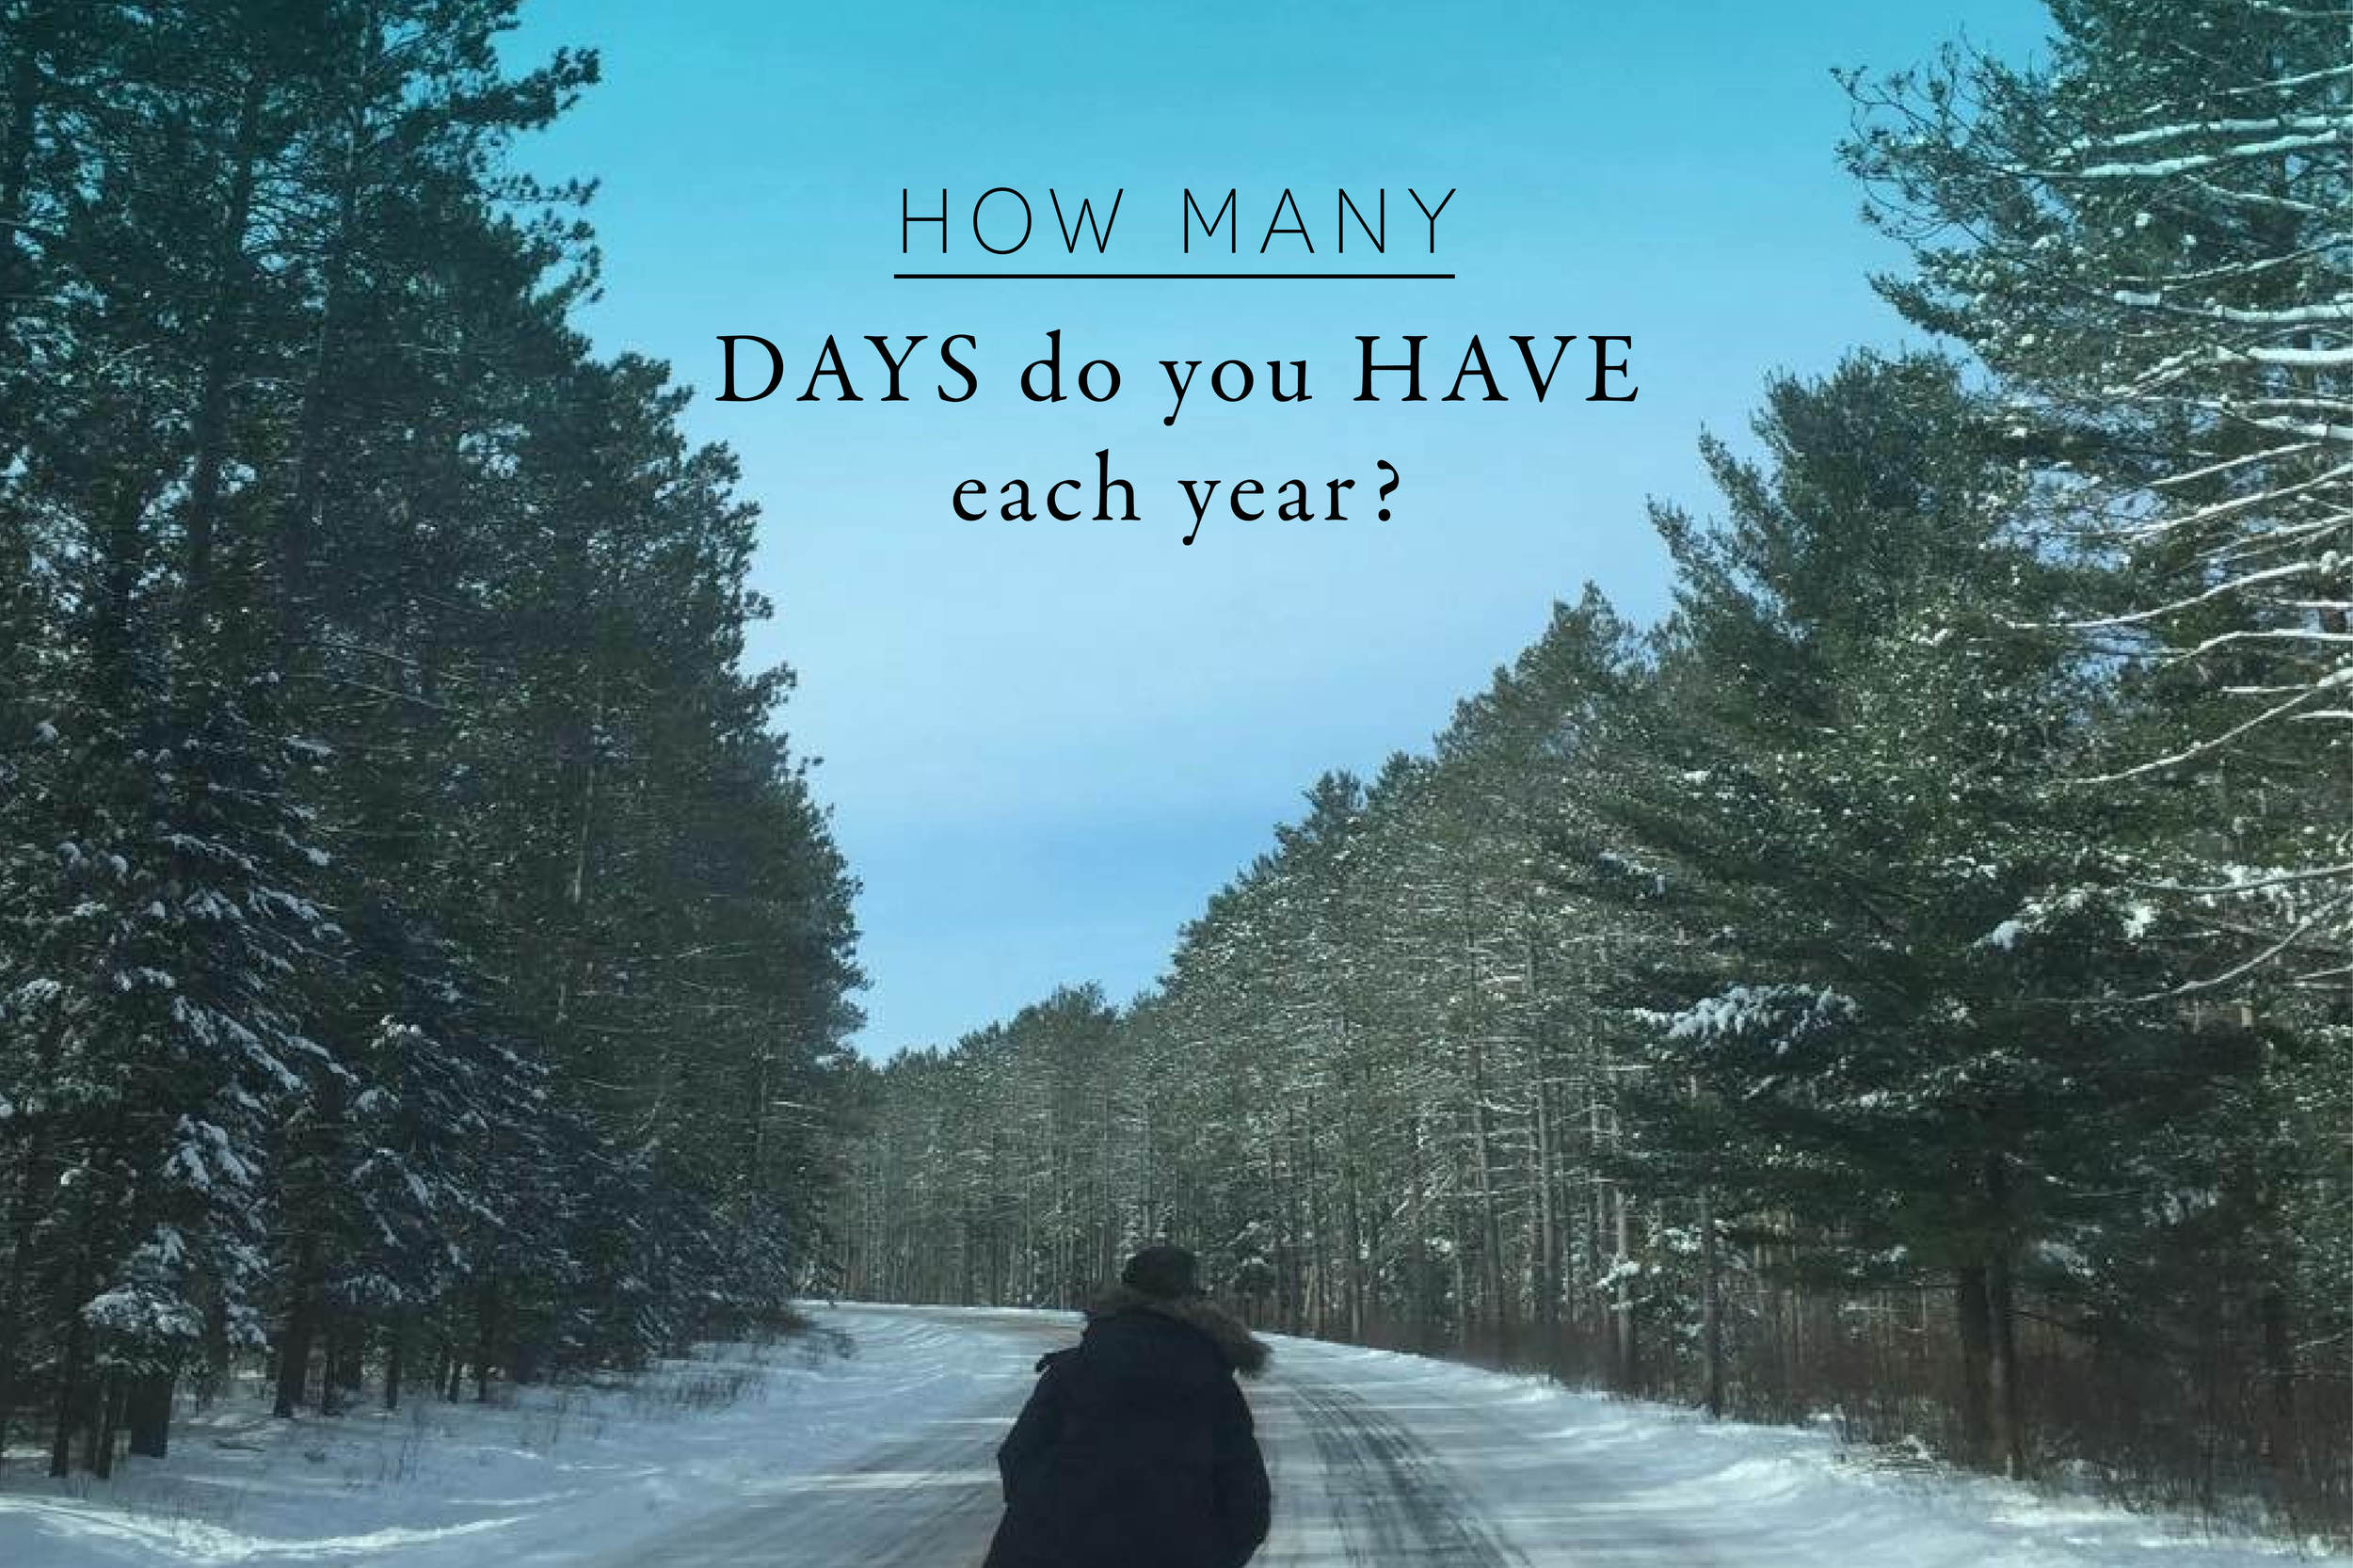 how many days do you have each year